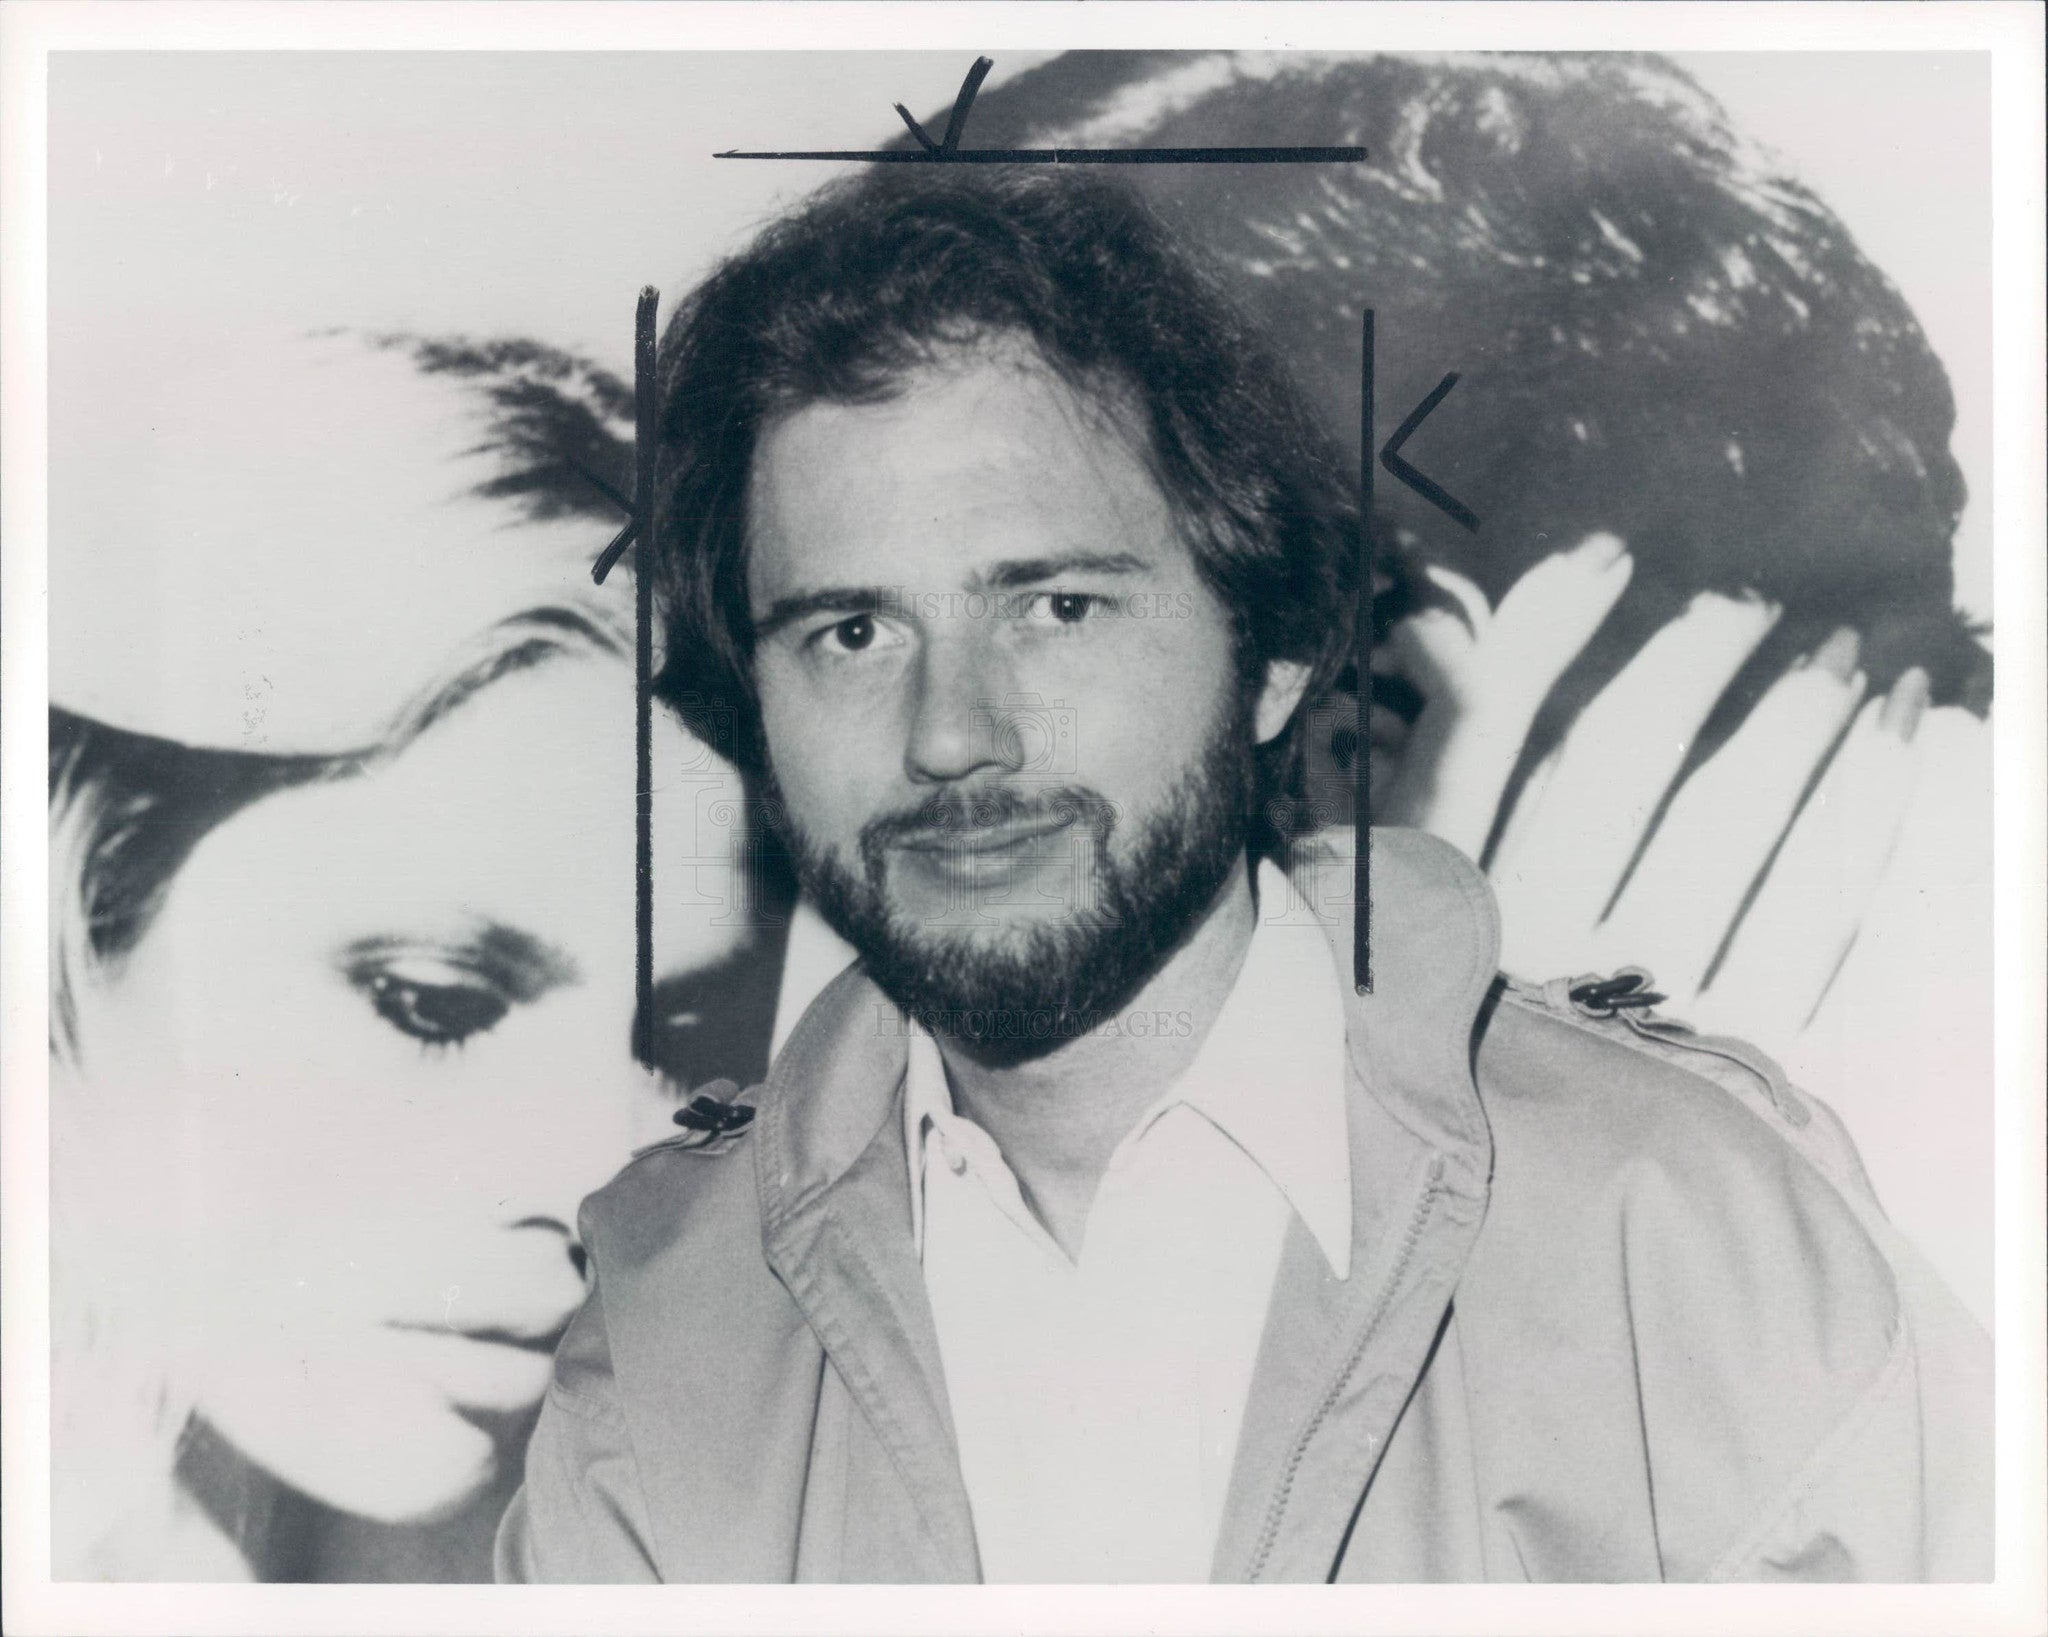 1980 Musician Author Rupert Holmes Press Photo - Historic Images